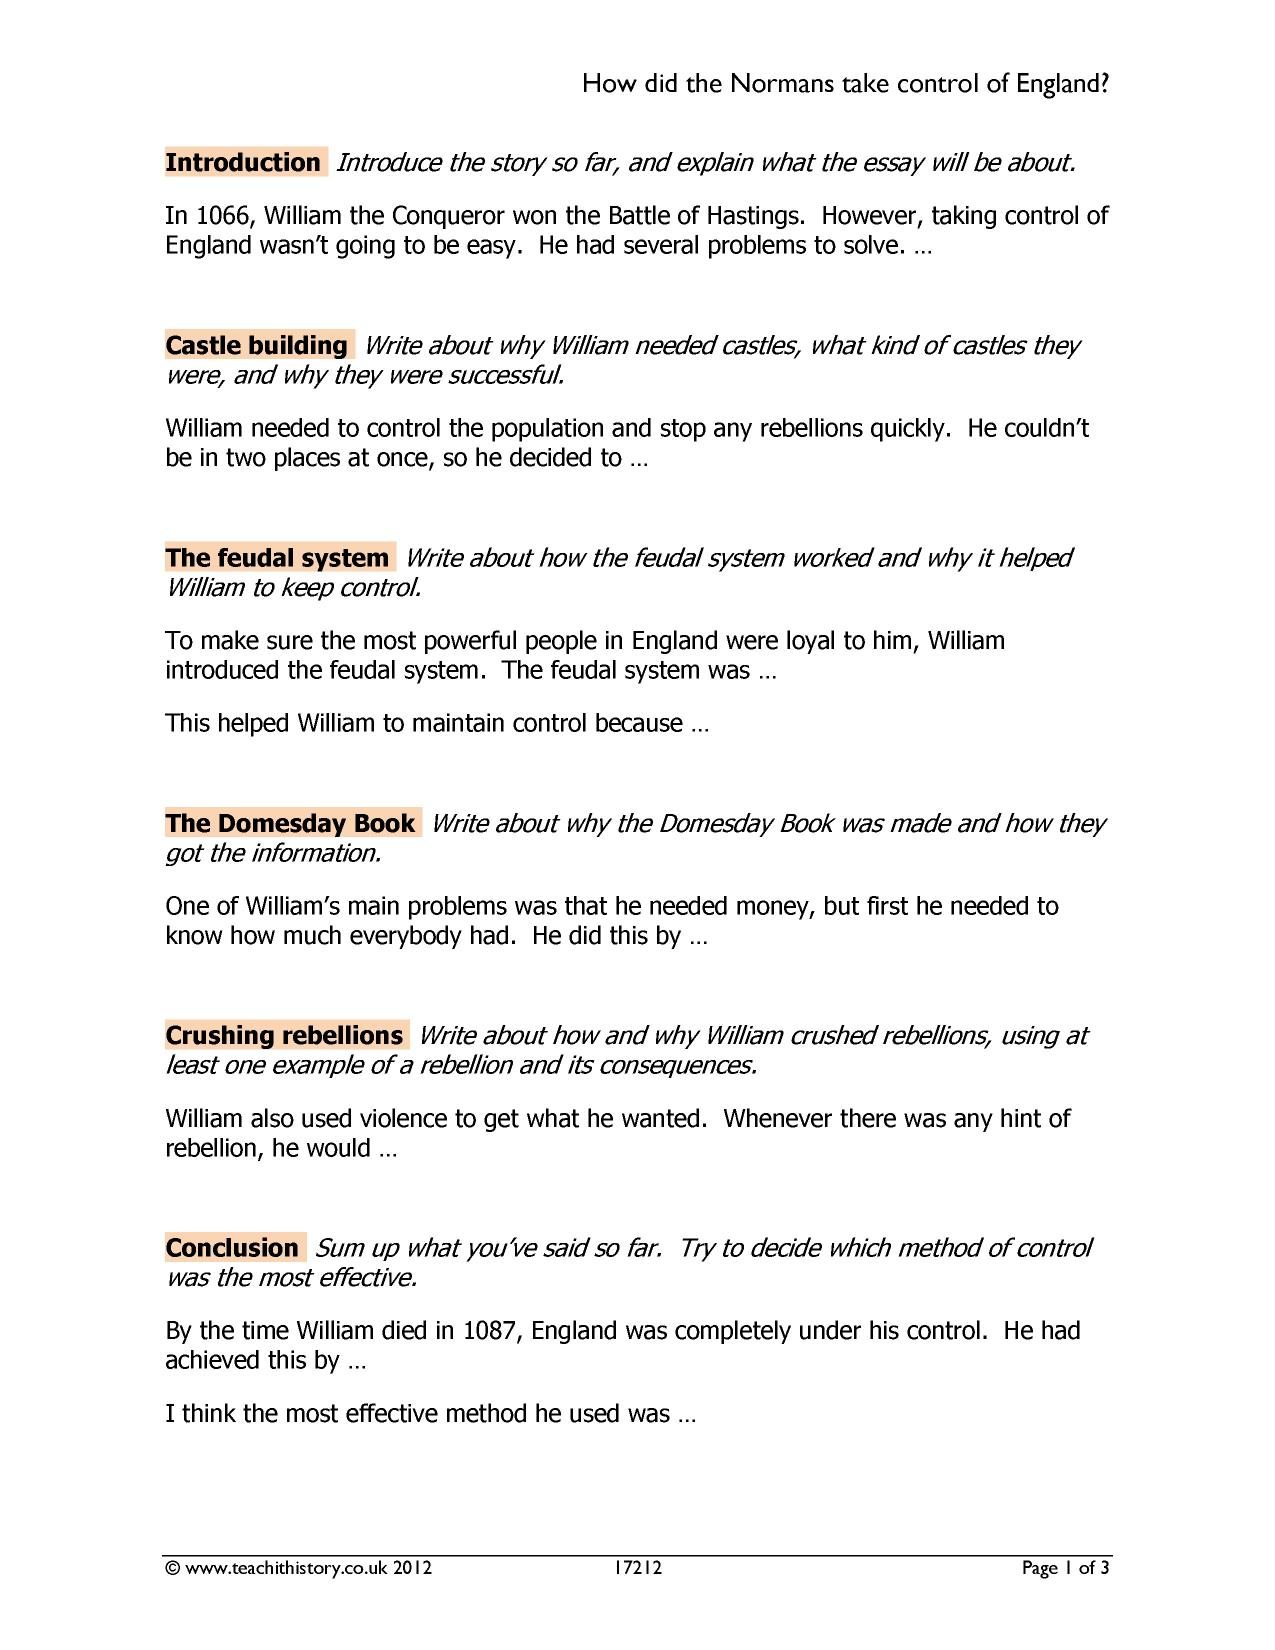 Help With A Business Plan  Preview Essays About Health also Argumentative Essay Thesis Statement Examples Ks  Power And Conflict In The Medieval Period  Teachit History Public Health Essays